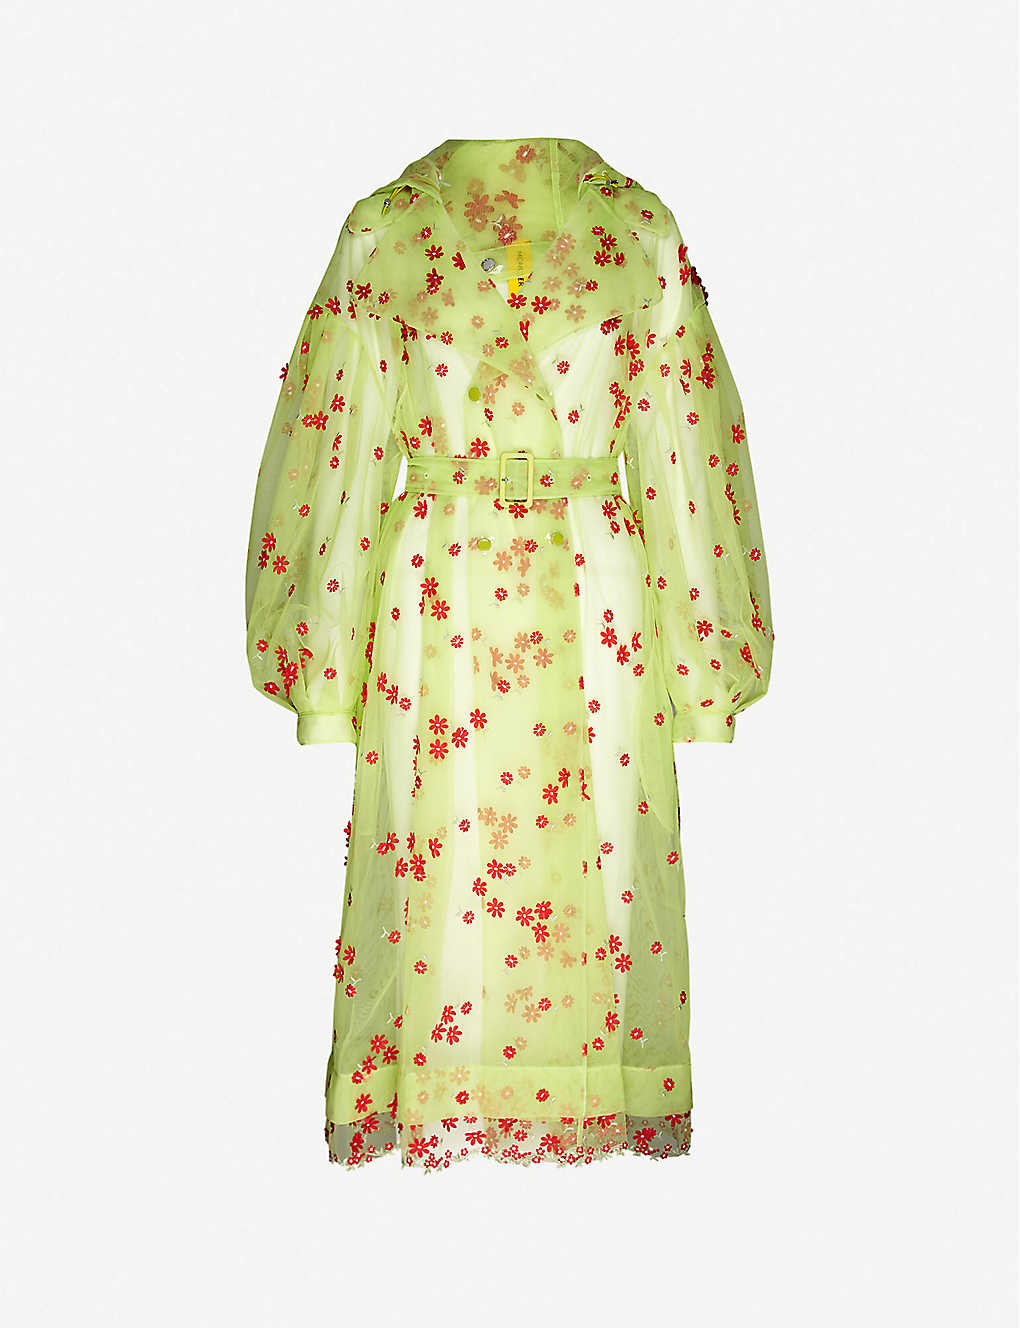 MONCLER GENIUS: Moncler Genius x Simone Rocha Coronilla floral-embroidered woven trench coat